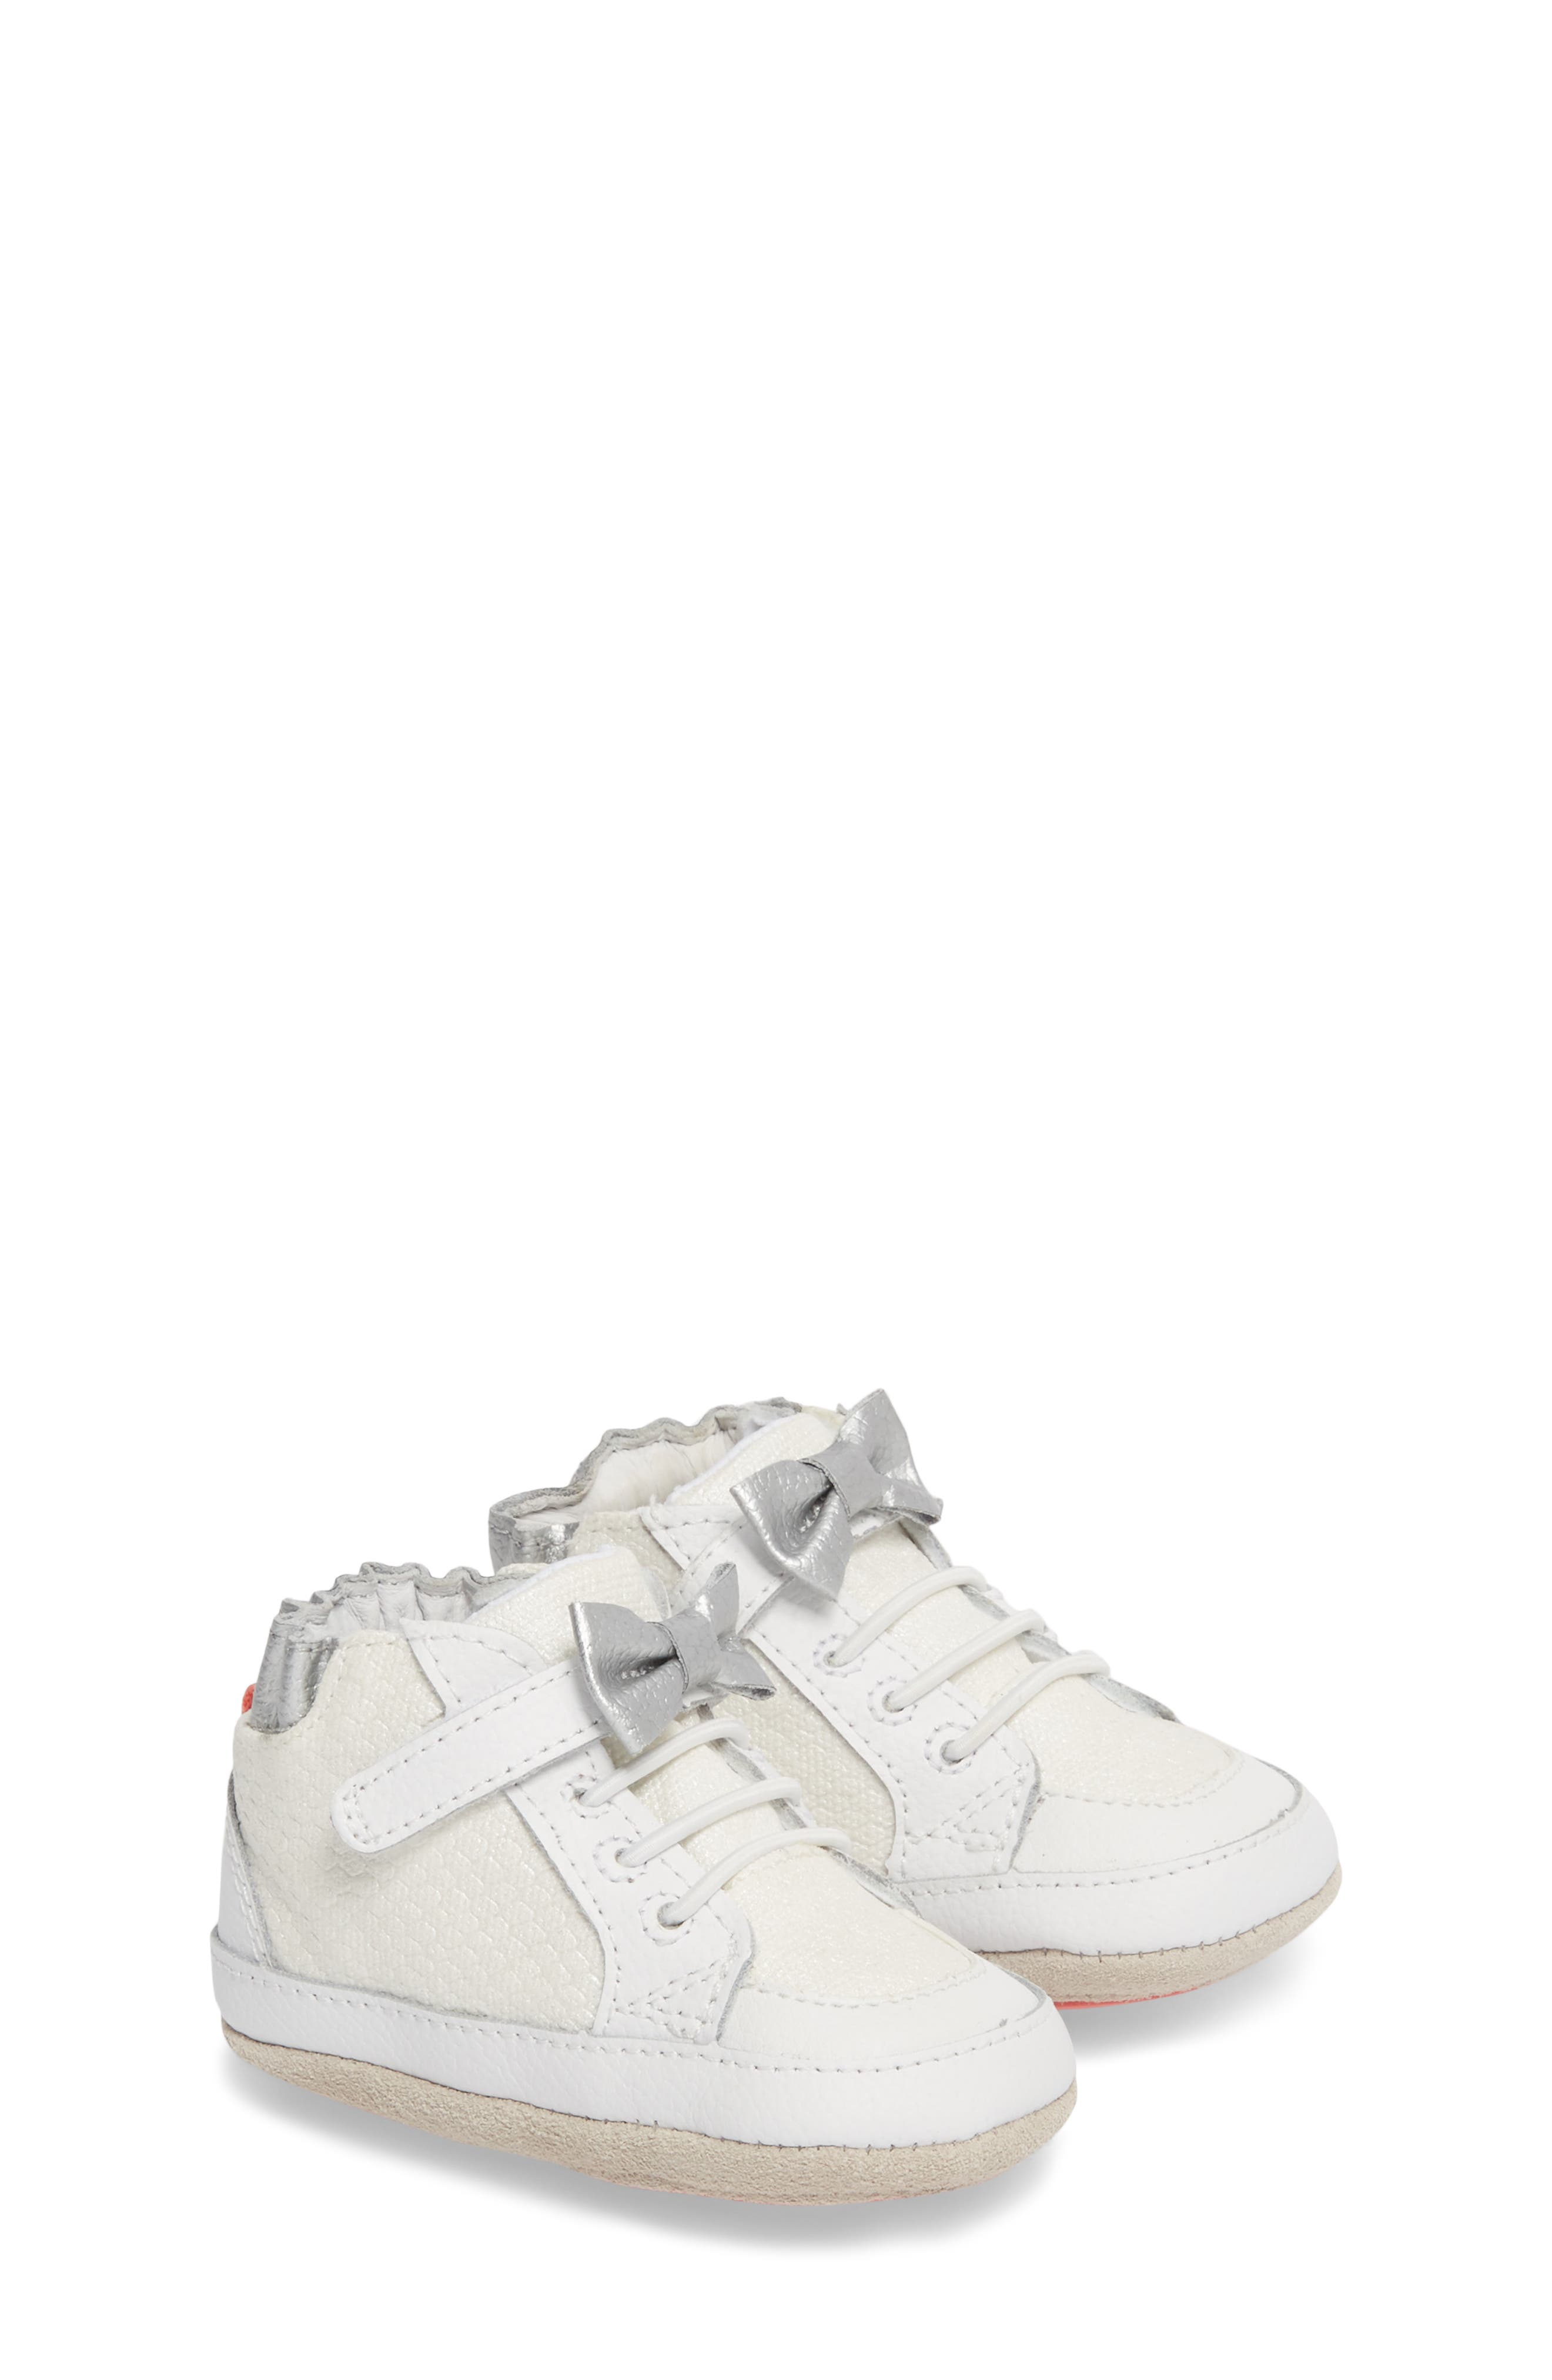 ROBEEZ<SUP>®</SUP> Skipping Stella Sneaker, Main, color, 100